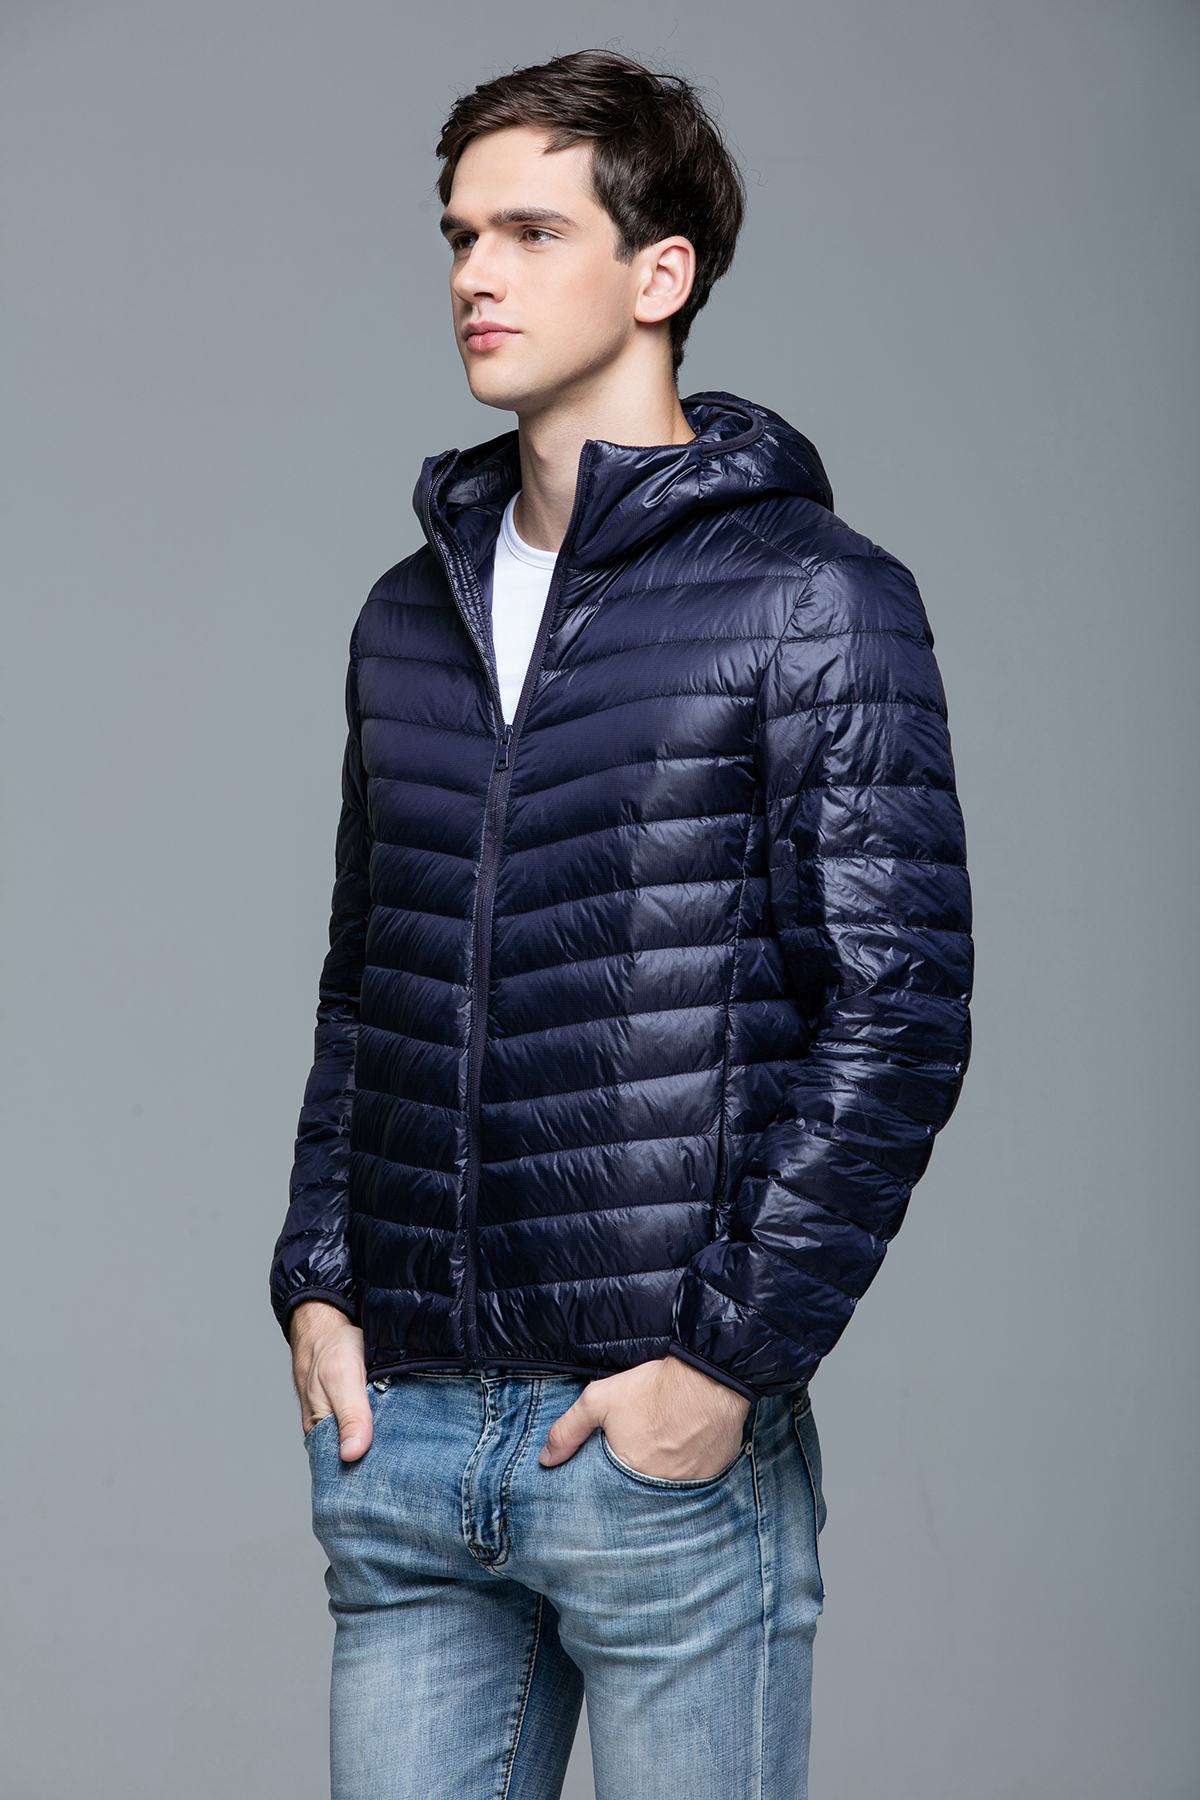 Pay Shell Credit Card >> Mens Ultralight Hooded Duck Down Puffer Jacket Coat Warm Outwear Packable Parka | eBay